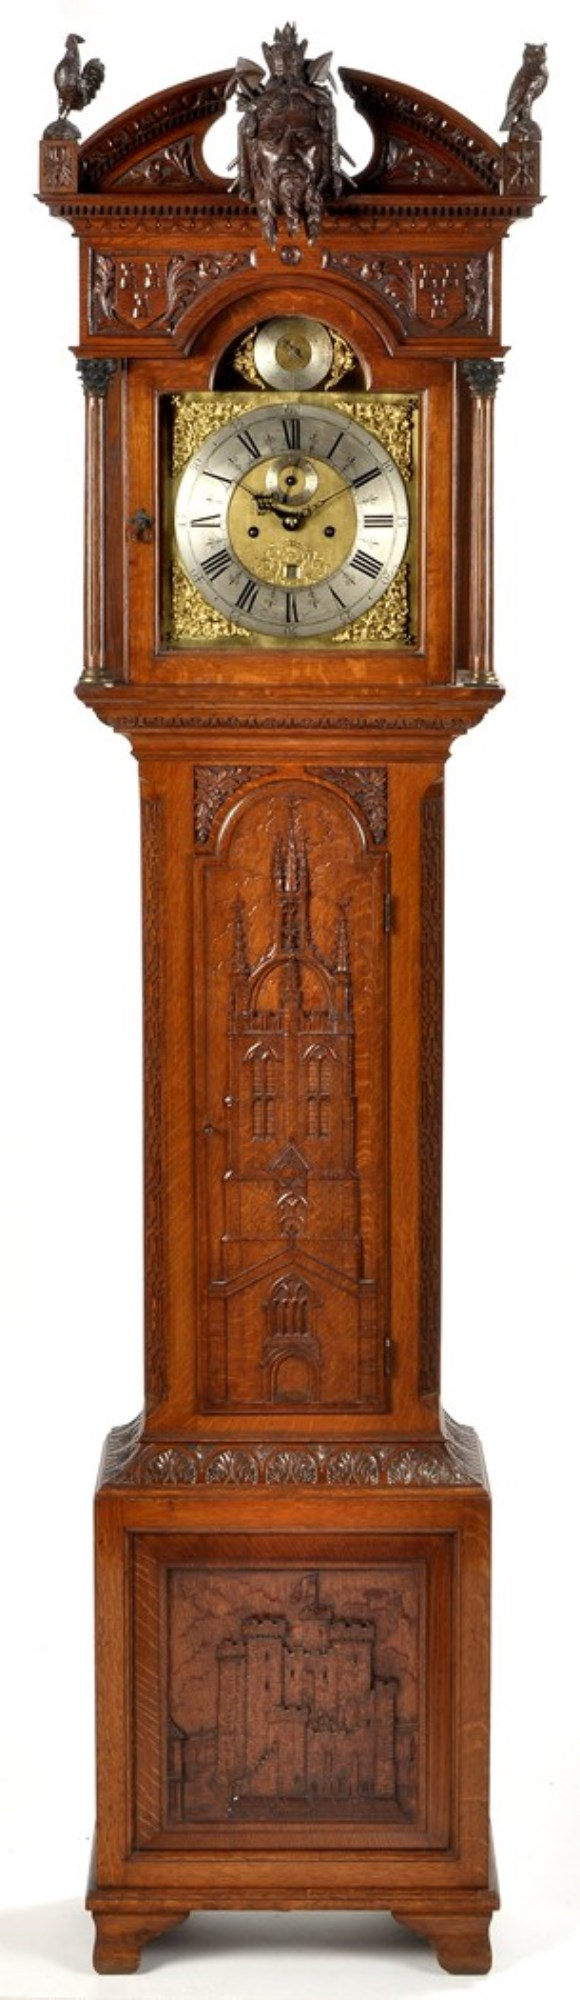 Gerrard Robinson: an impressive oak longcase clock, with ornate carving of Newcastle subjects by the famous carver Gerrard Robinson,